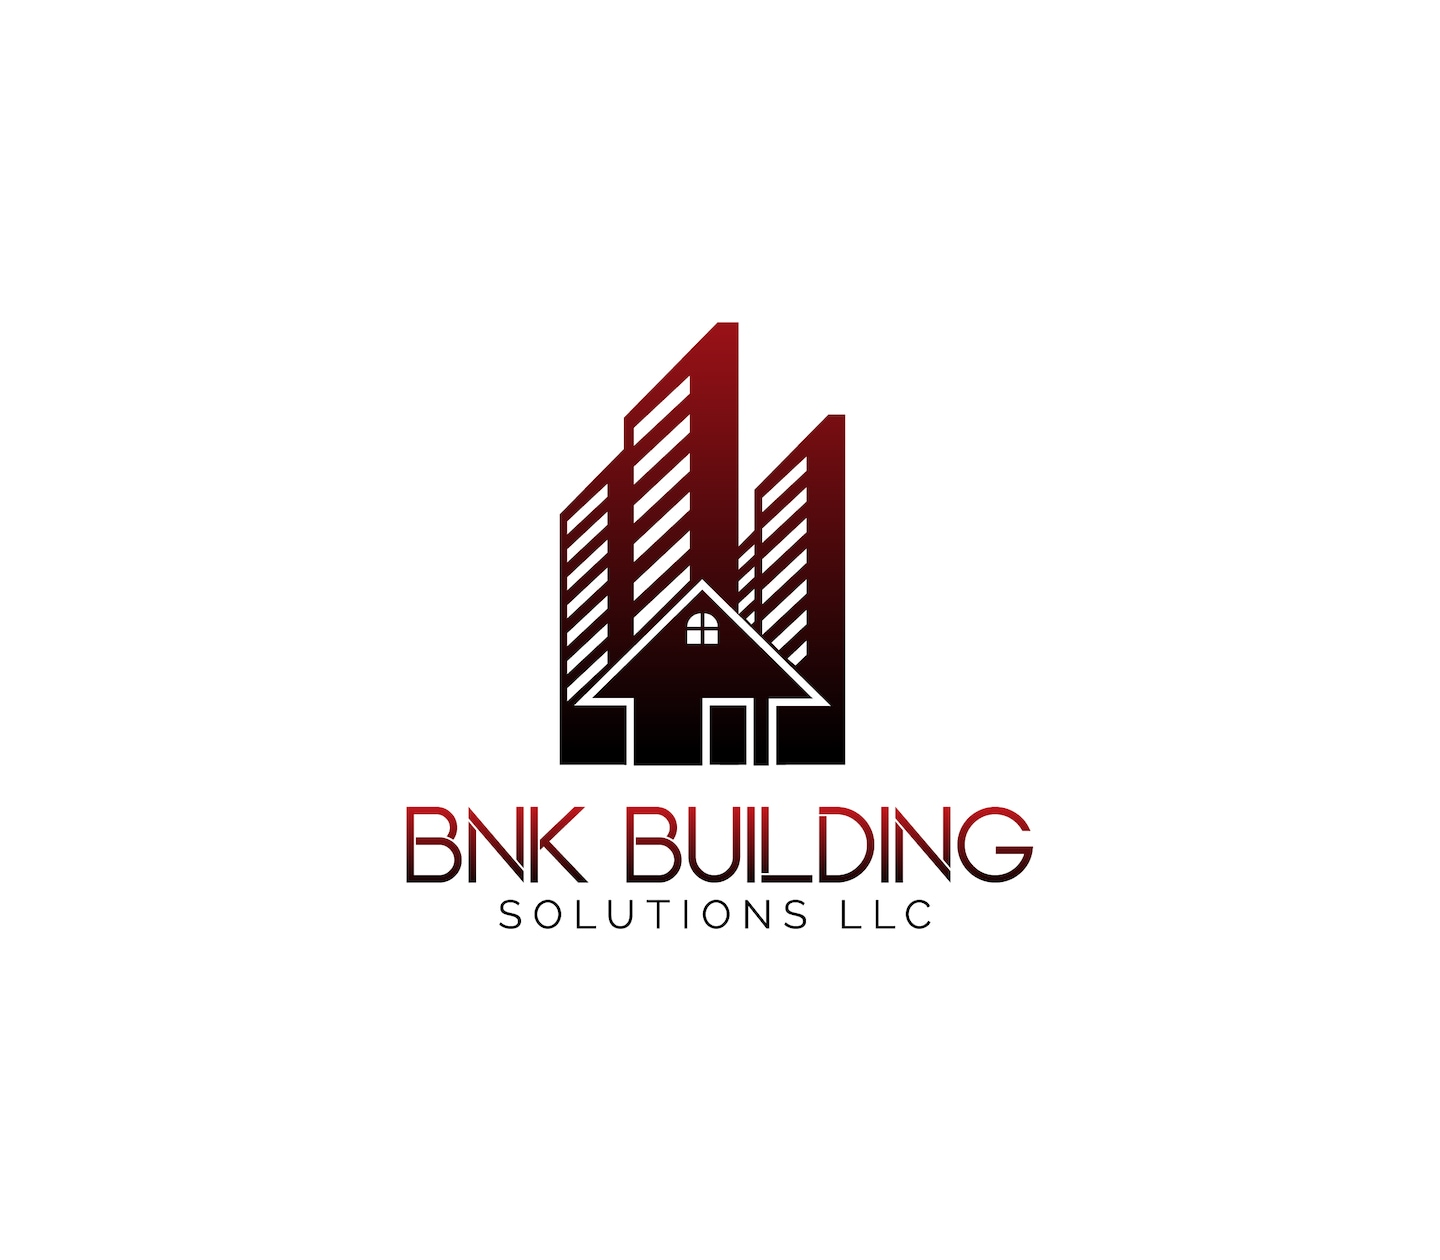 BNK Building Solutions llc